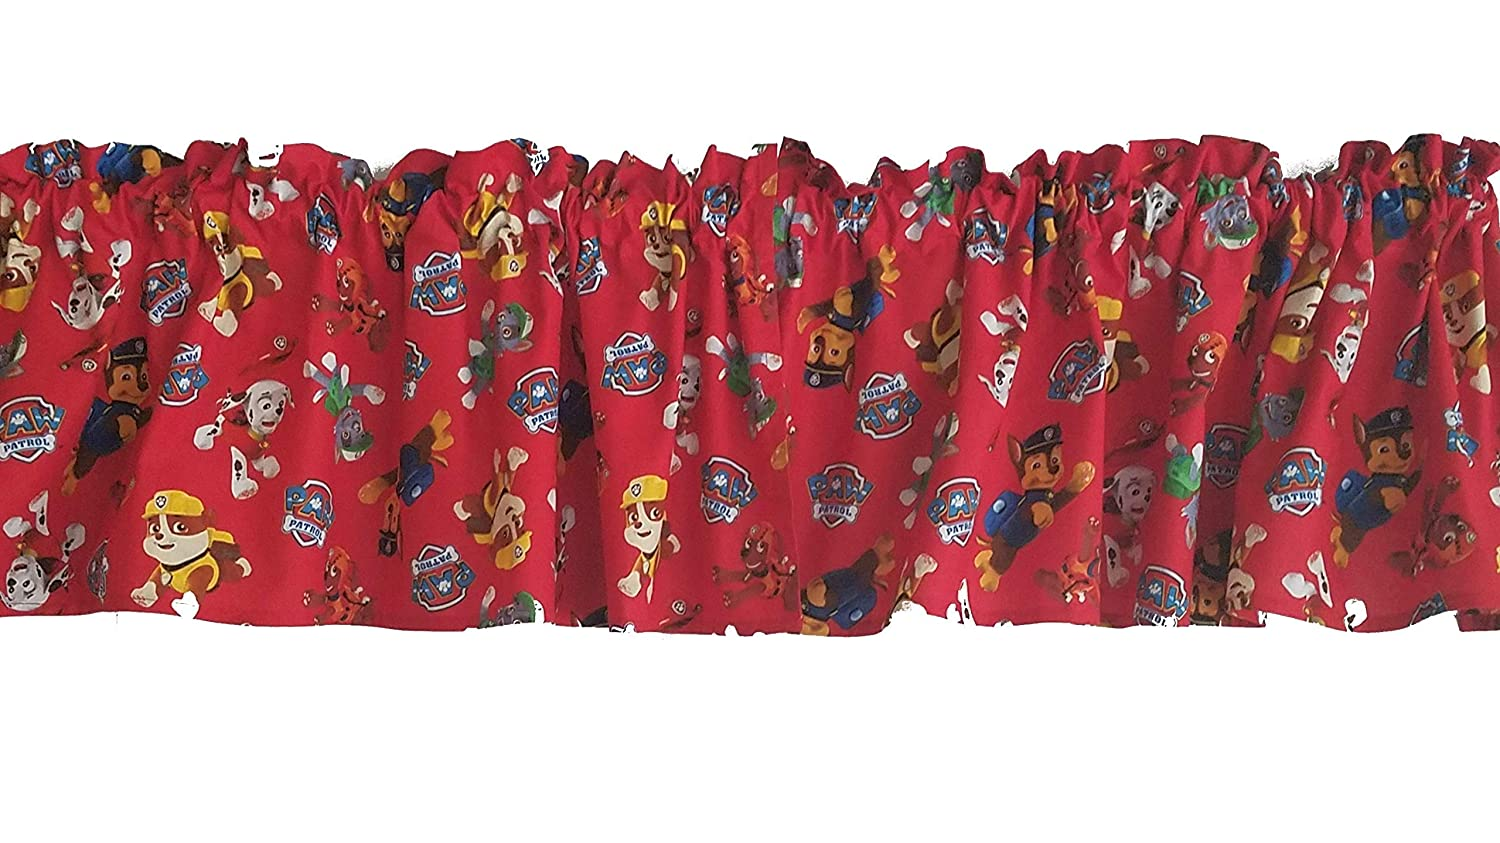 Chase Paw Patrol Curtains Rocky and Zuma Children Character Curtains Rubble Red Paw Patrol Curtains 41.5 Inches Wide x 13.5 Inches Long